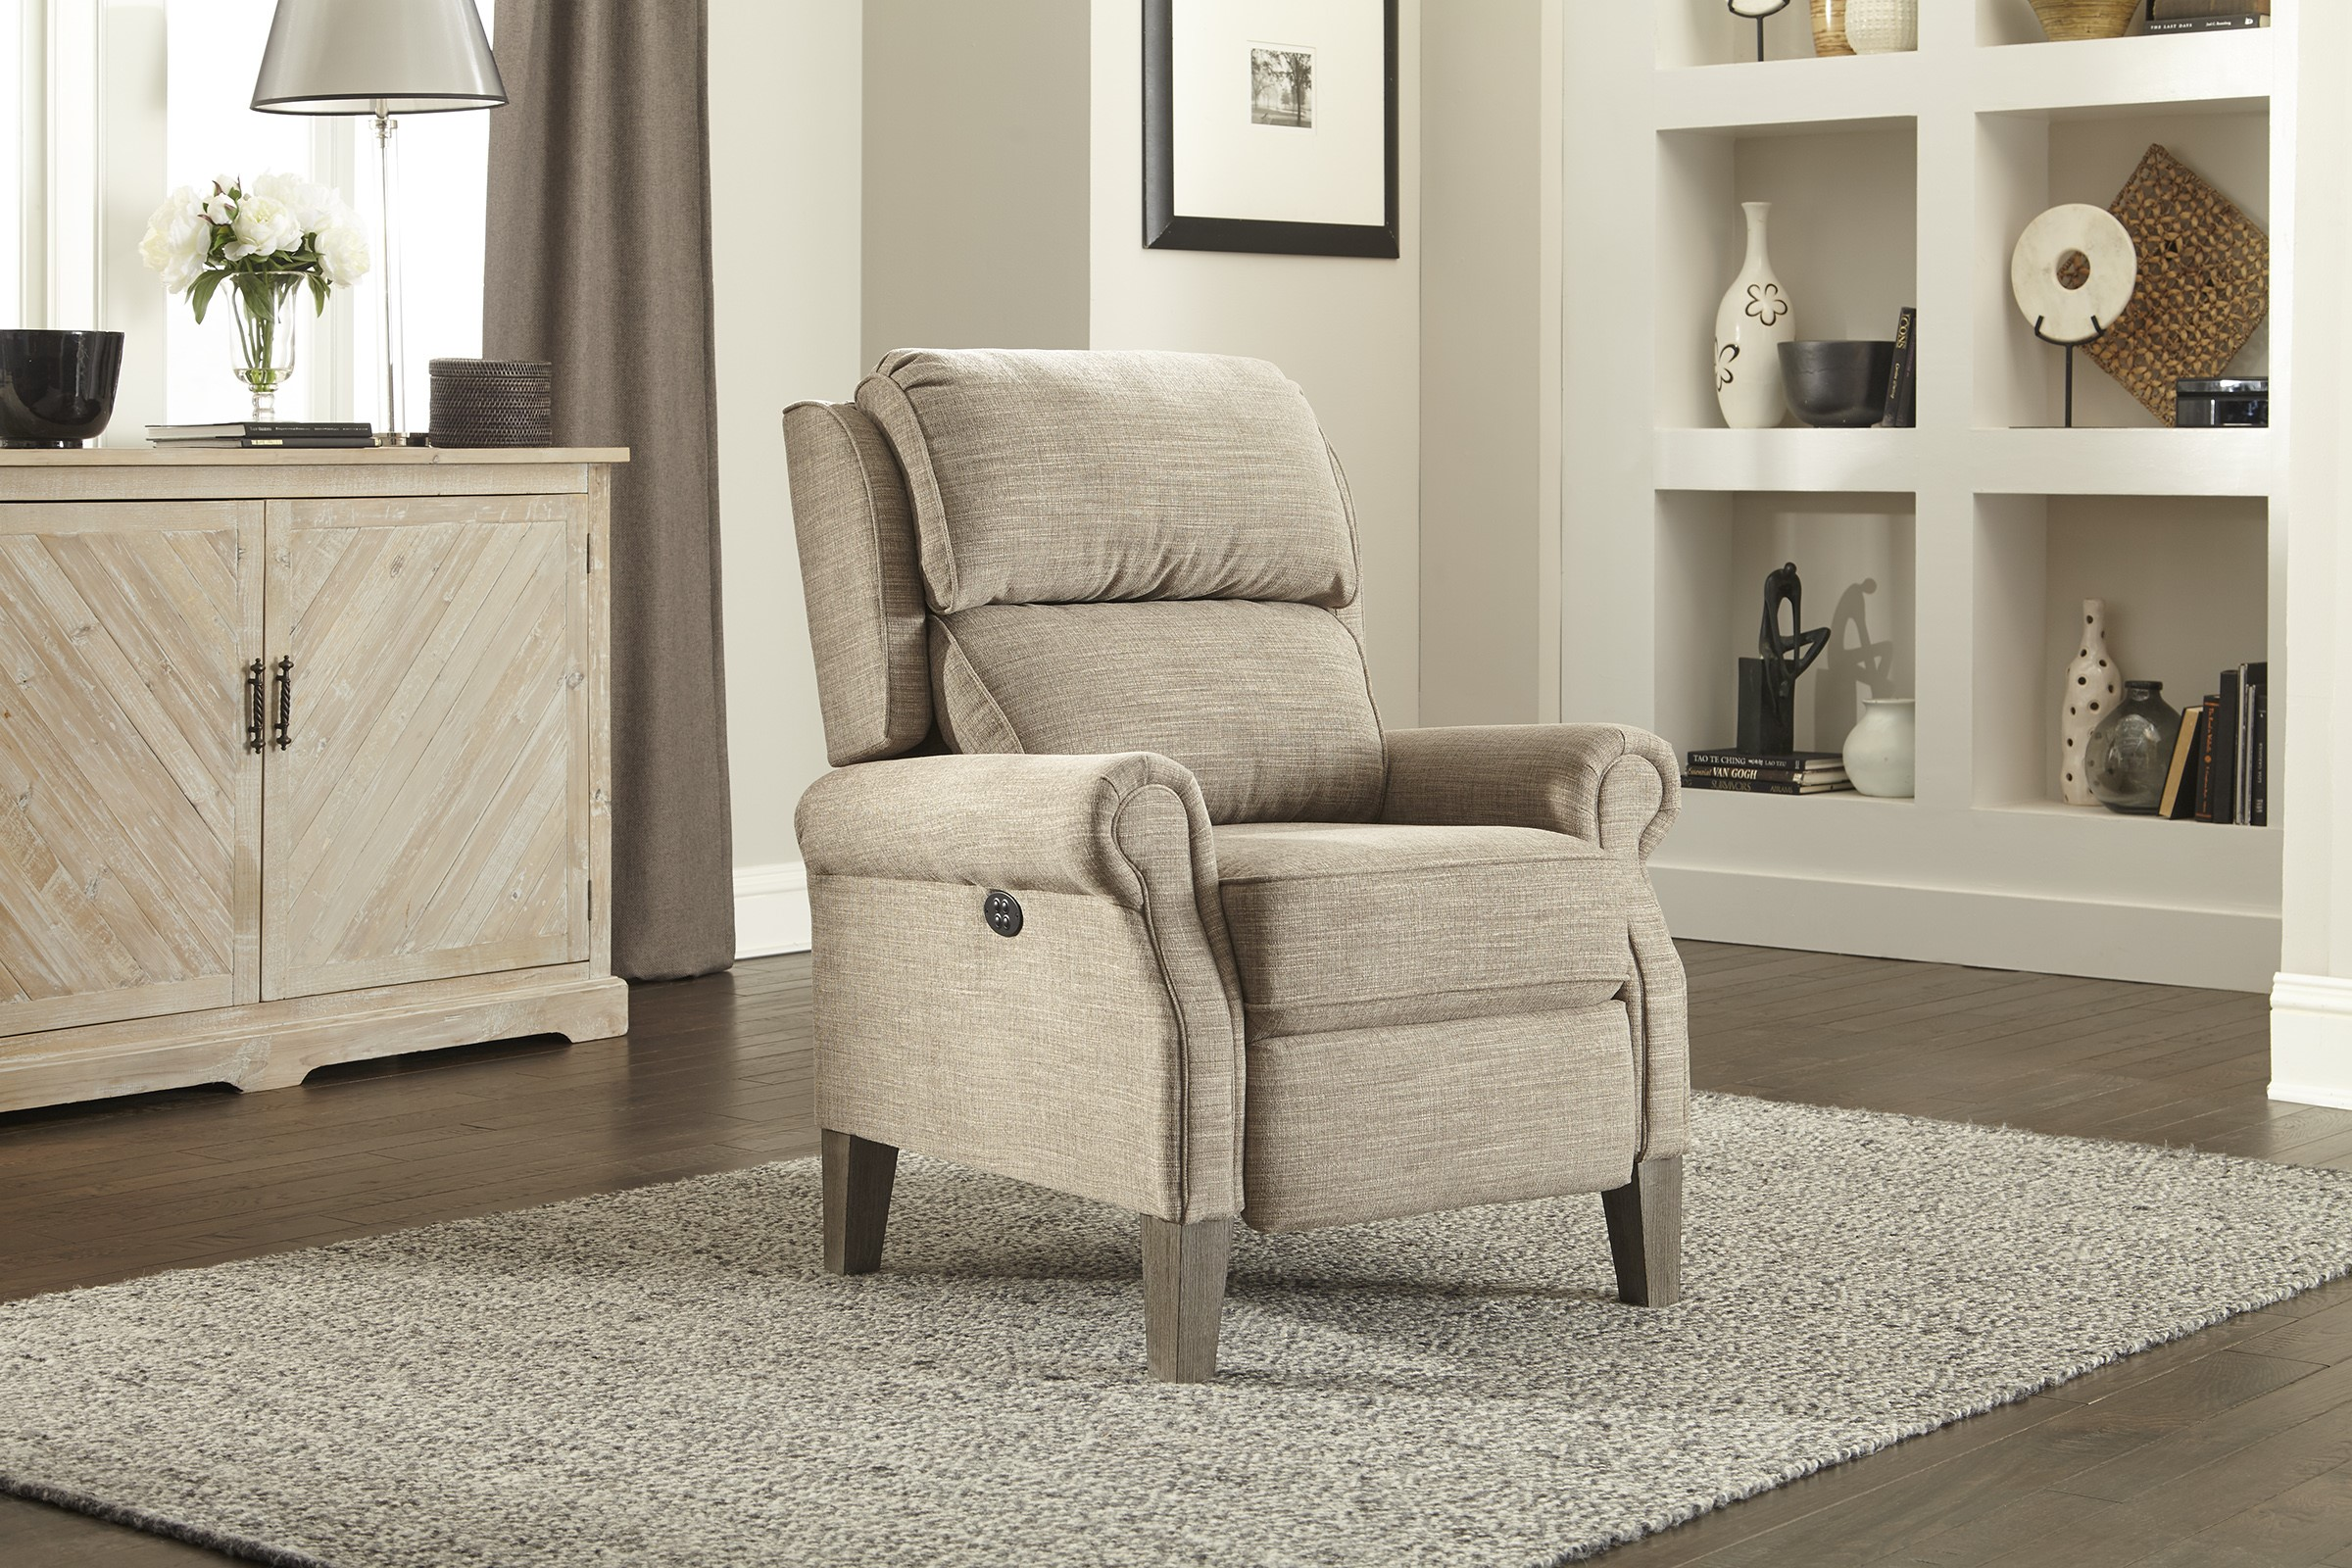 stylish recliners add to your Living Room Furniture in Chattanooga TN